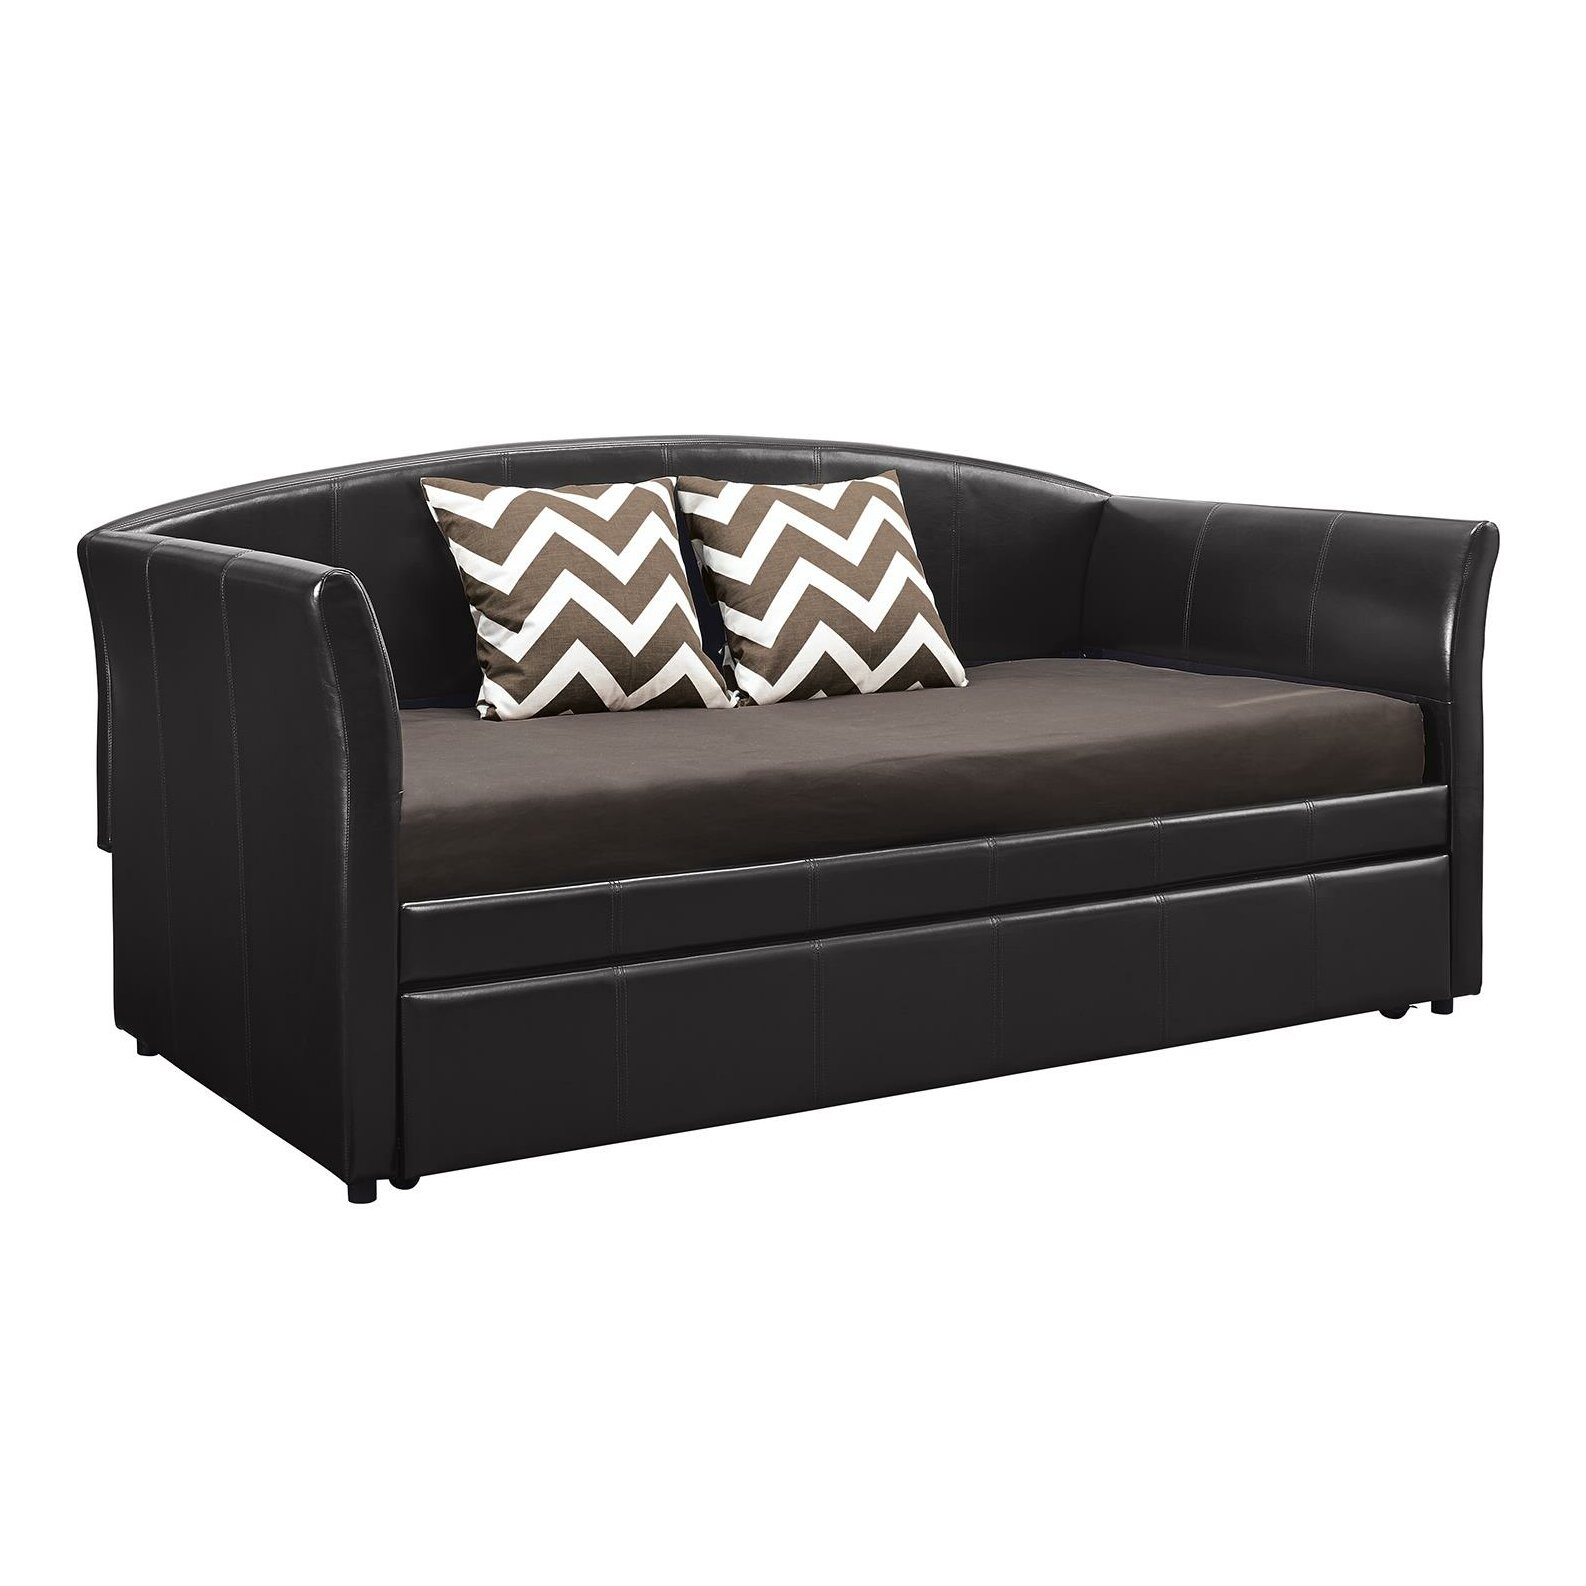 Dhp Halle Daybed With Trundle Amp Reviews Wayfair